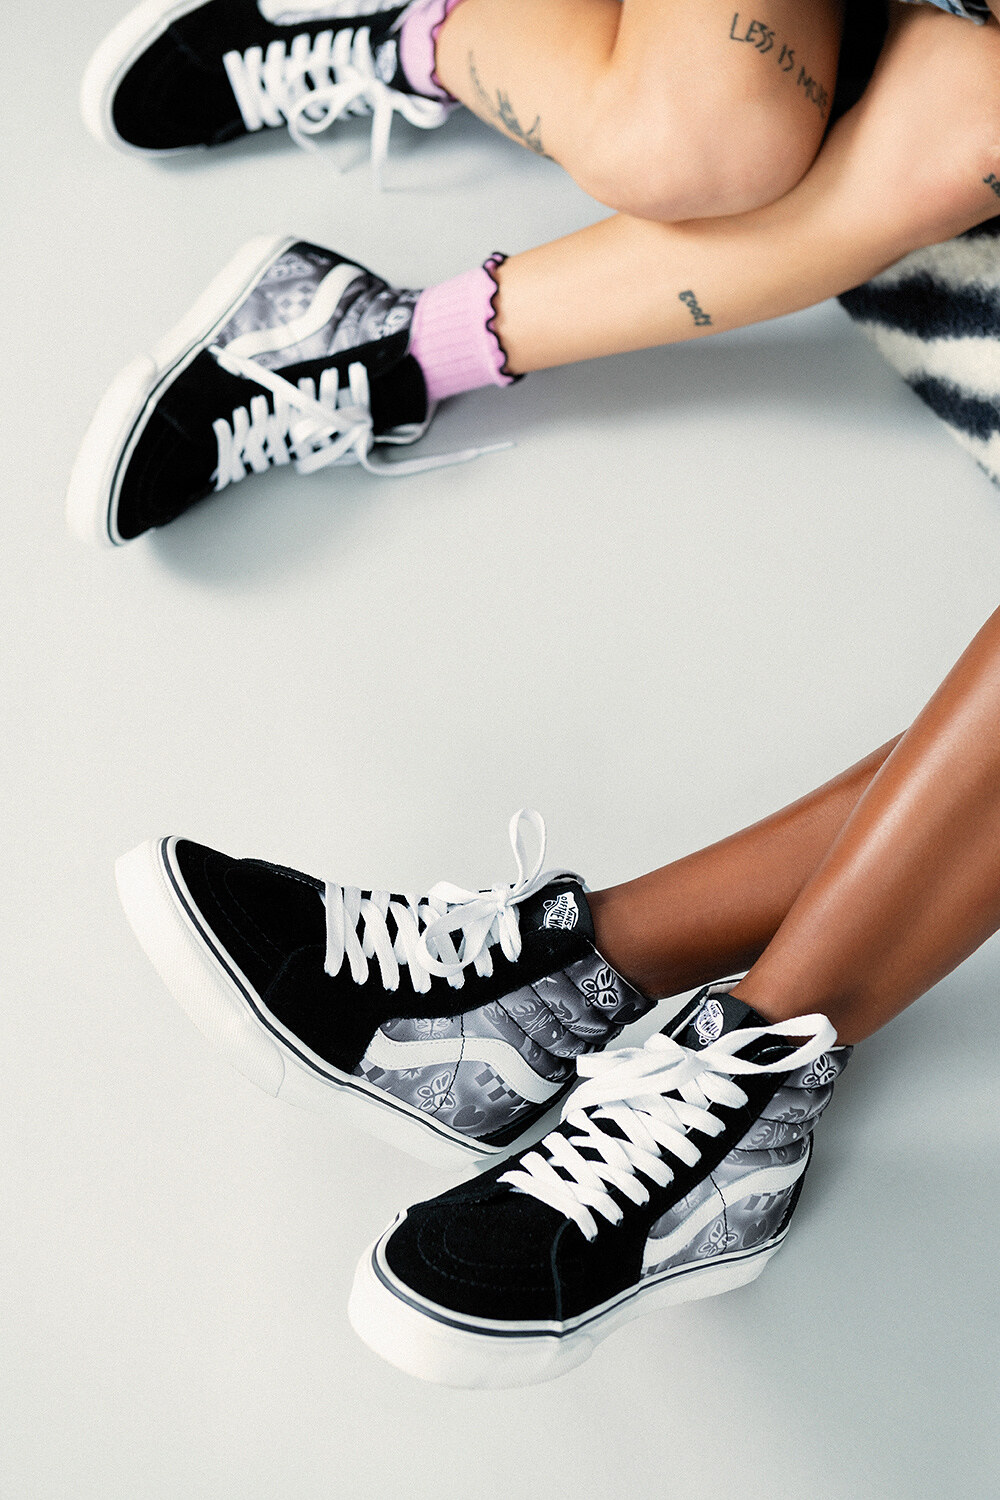 Vans Better Together collection